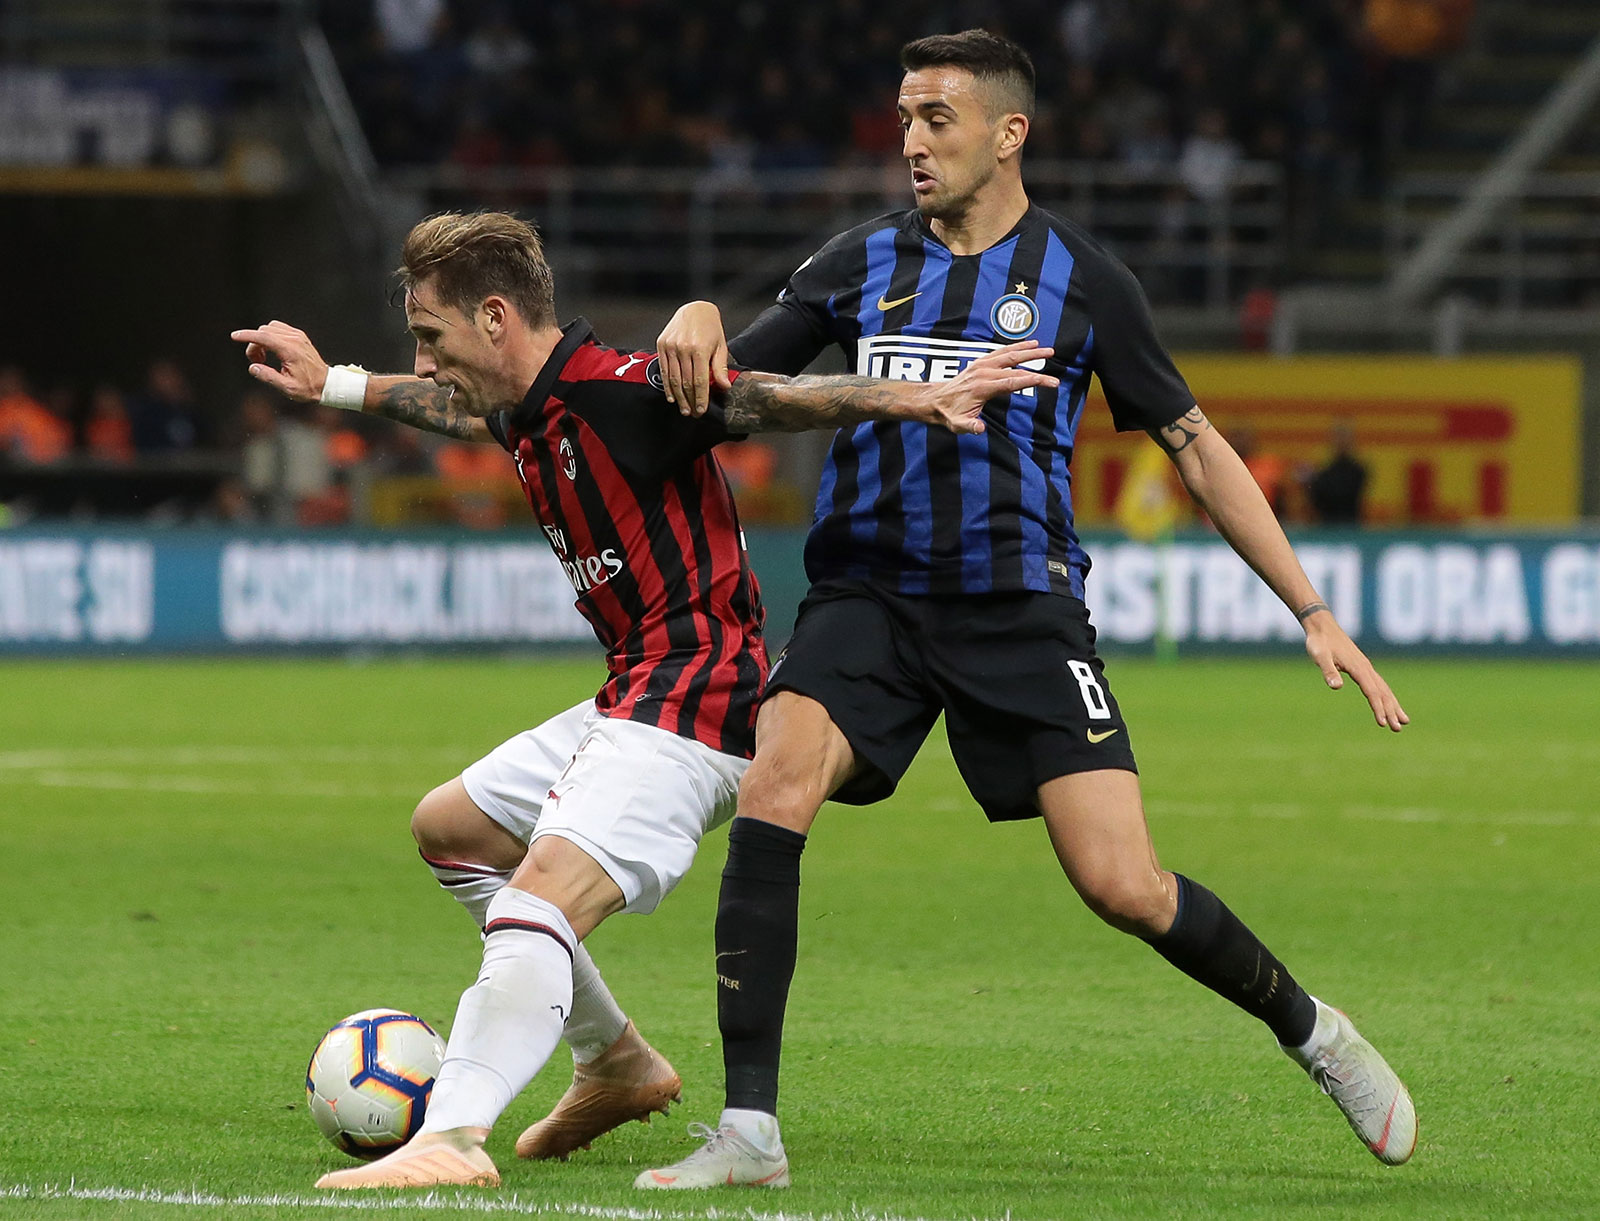 Lucas Biglia and Matías Vecino during Inter-Milan at Stadio San Siro on October 21, 2018. (Photo by Emilio Andreoli/Getty Images)